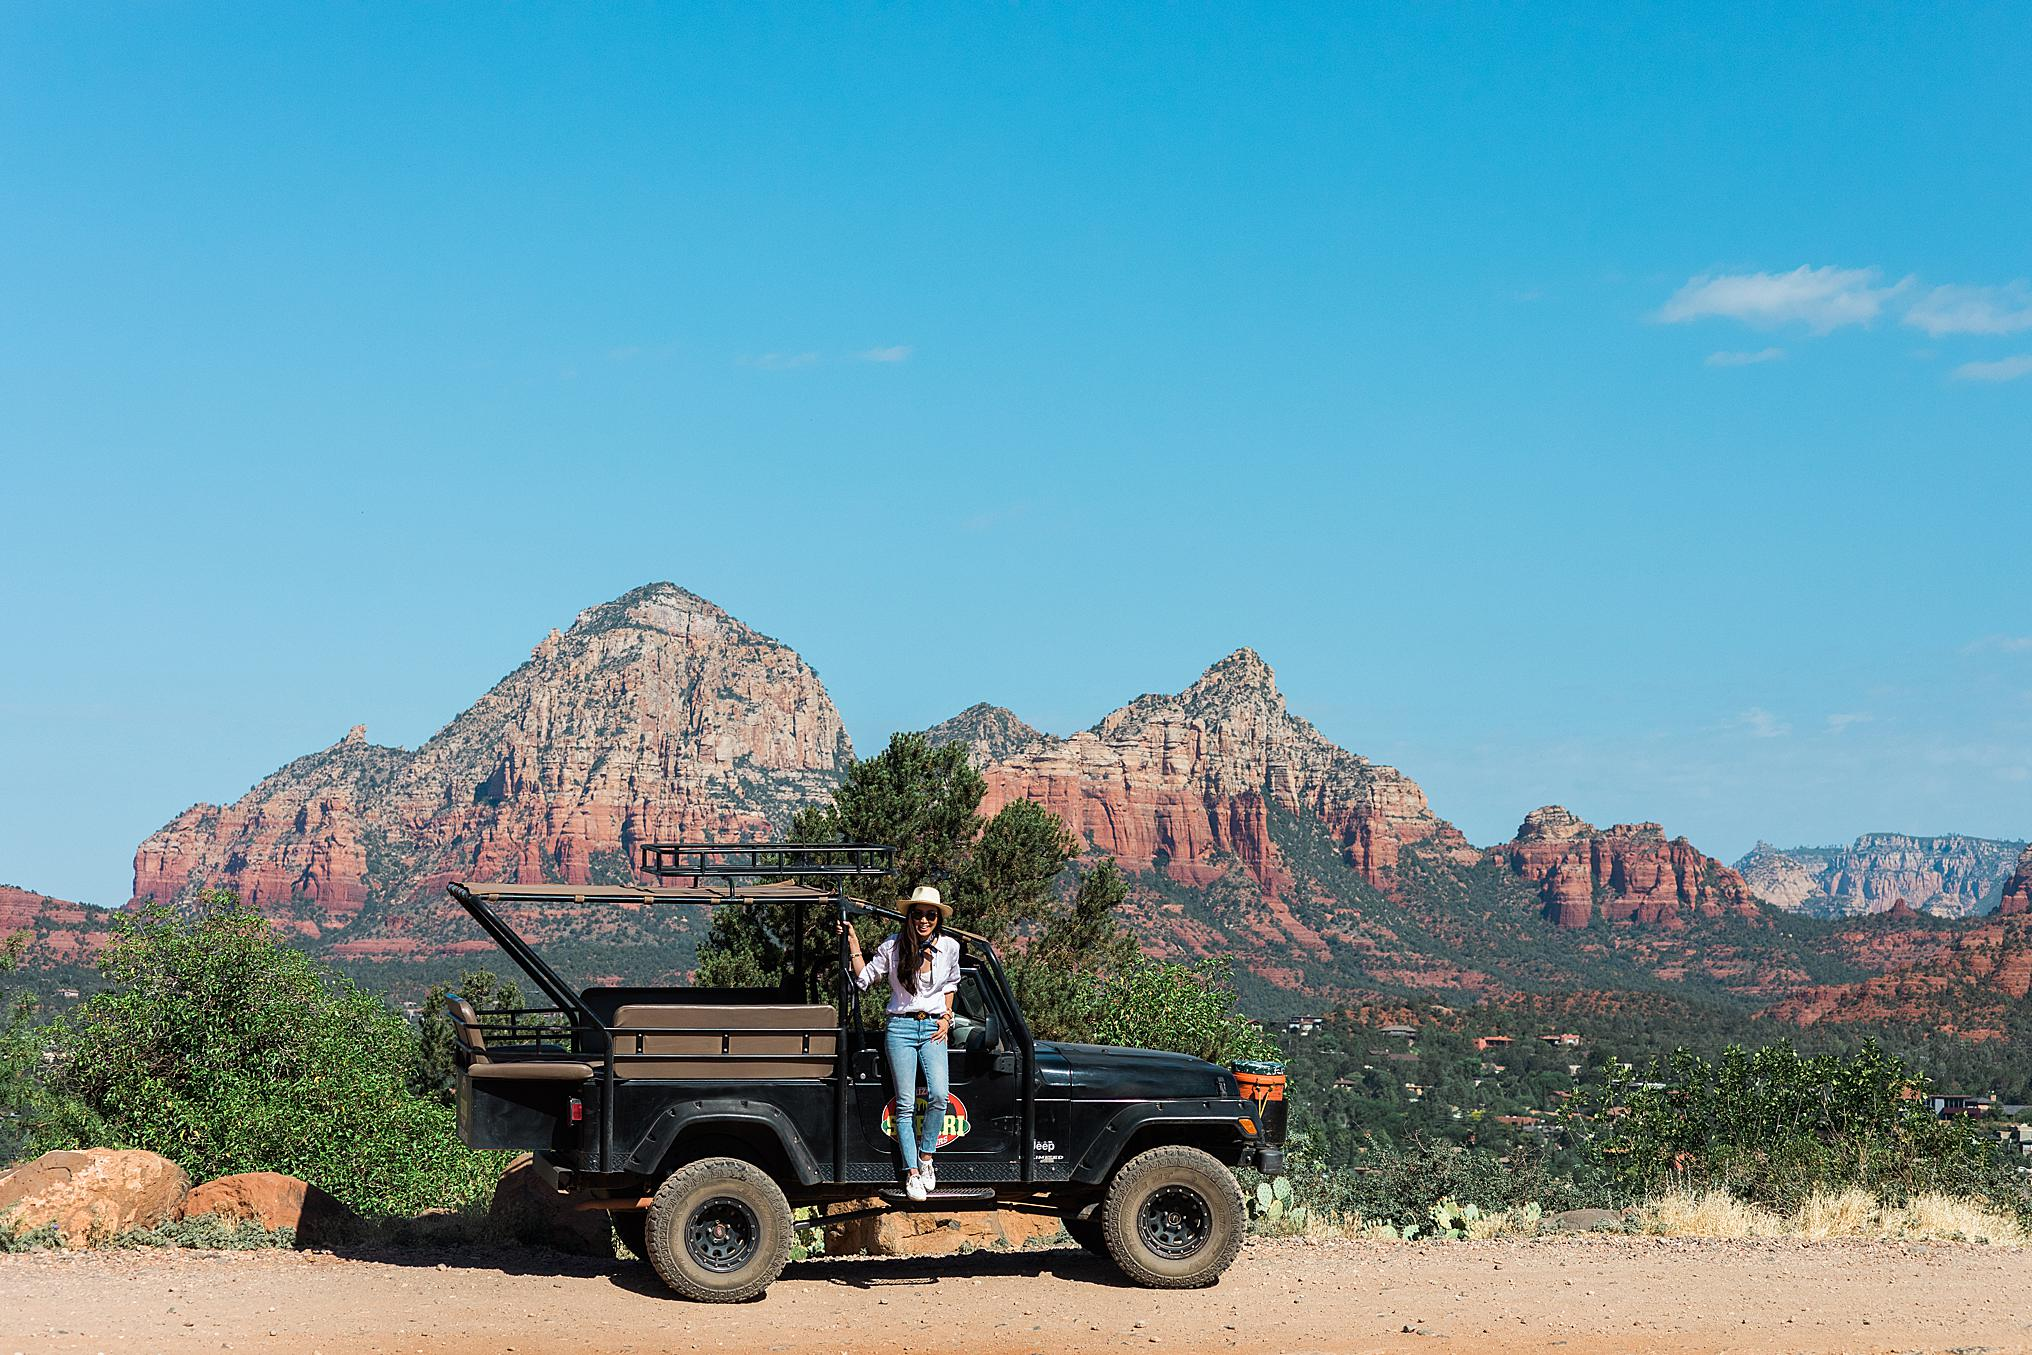 sedona Jeep Tour safari with travel blogger Diana Elizabeth